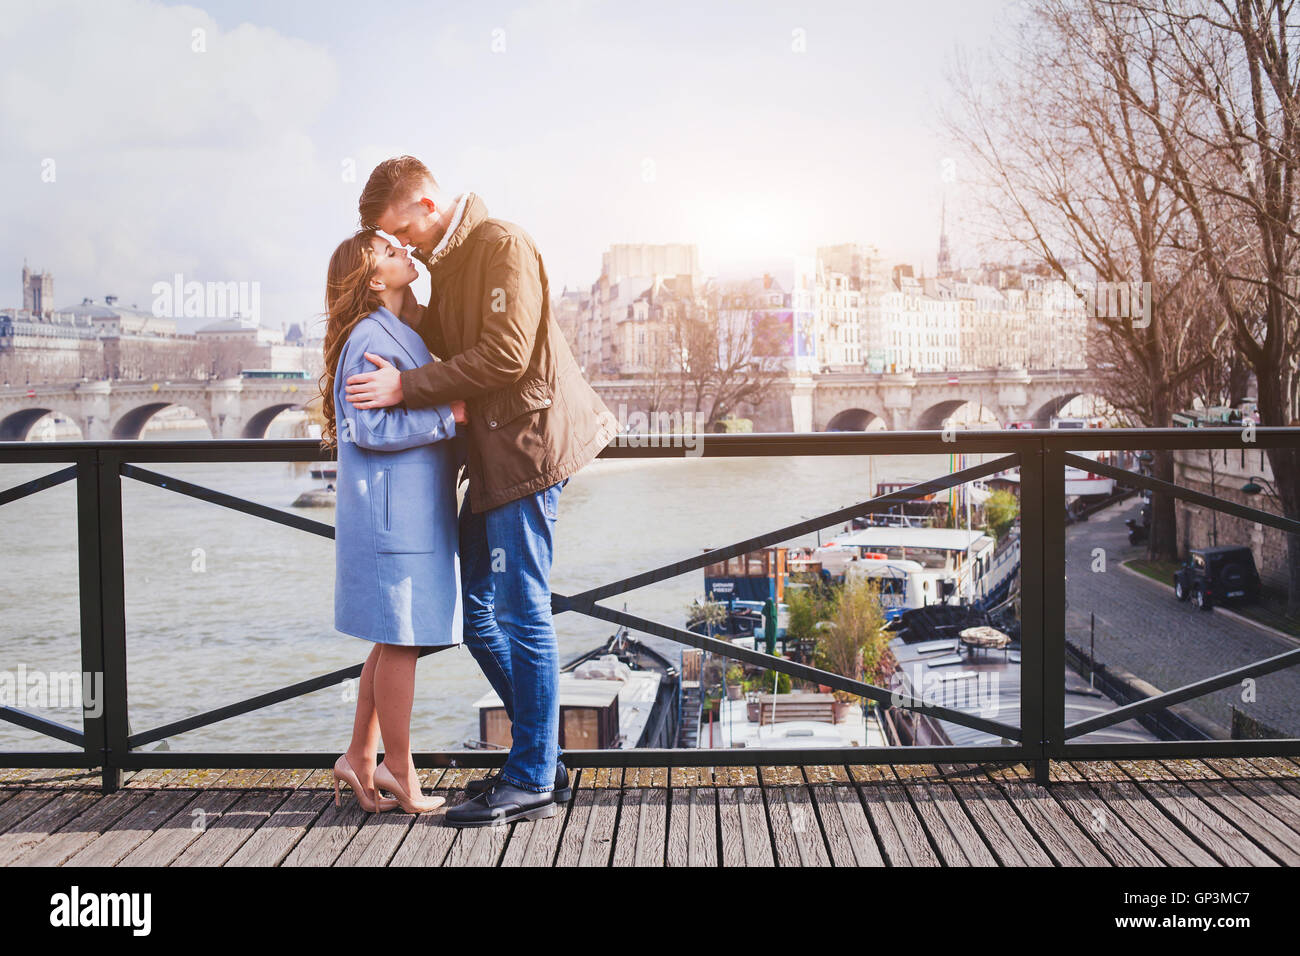 Date romantique, couple sur le pont à Paris Photo Stock